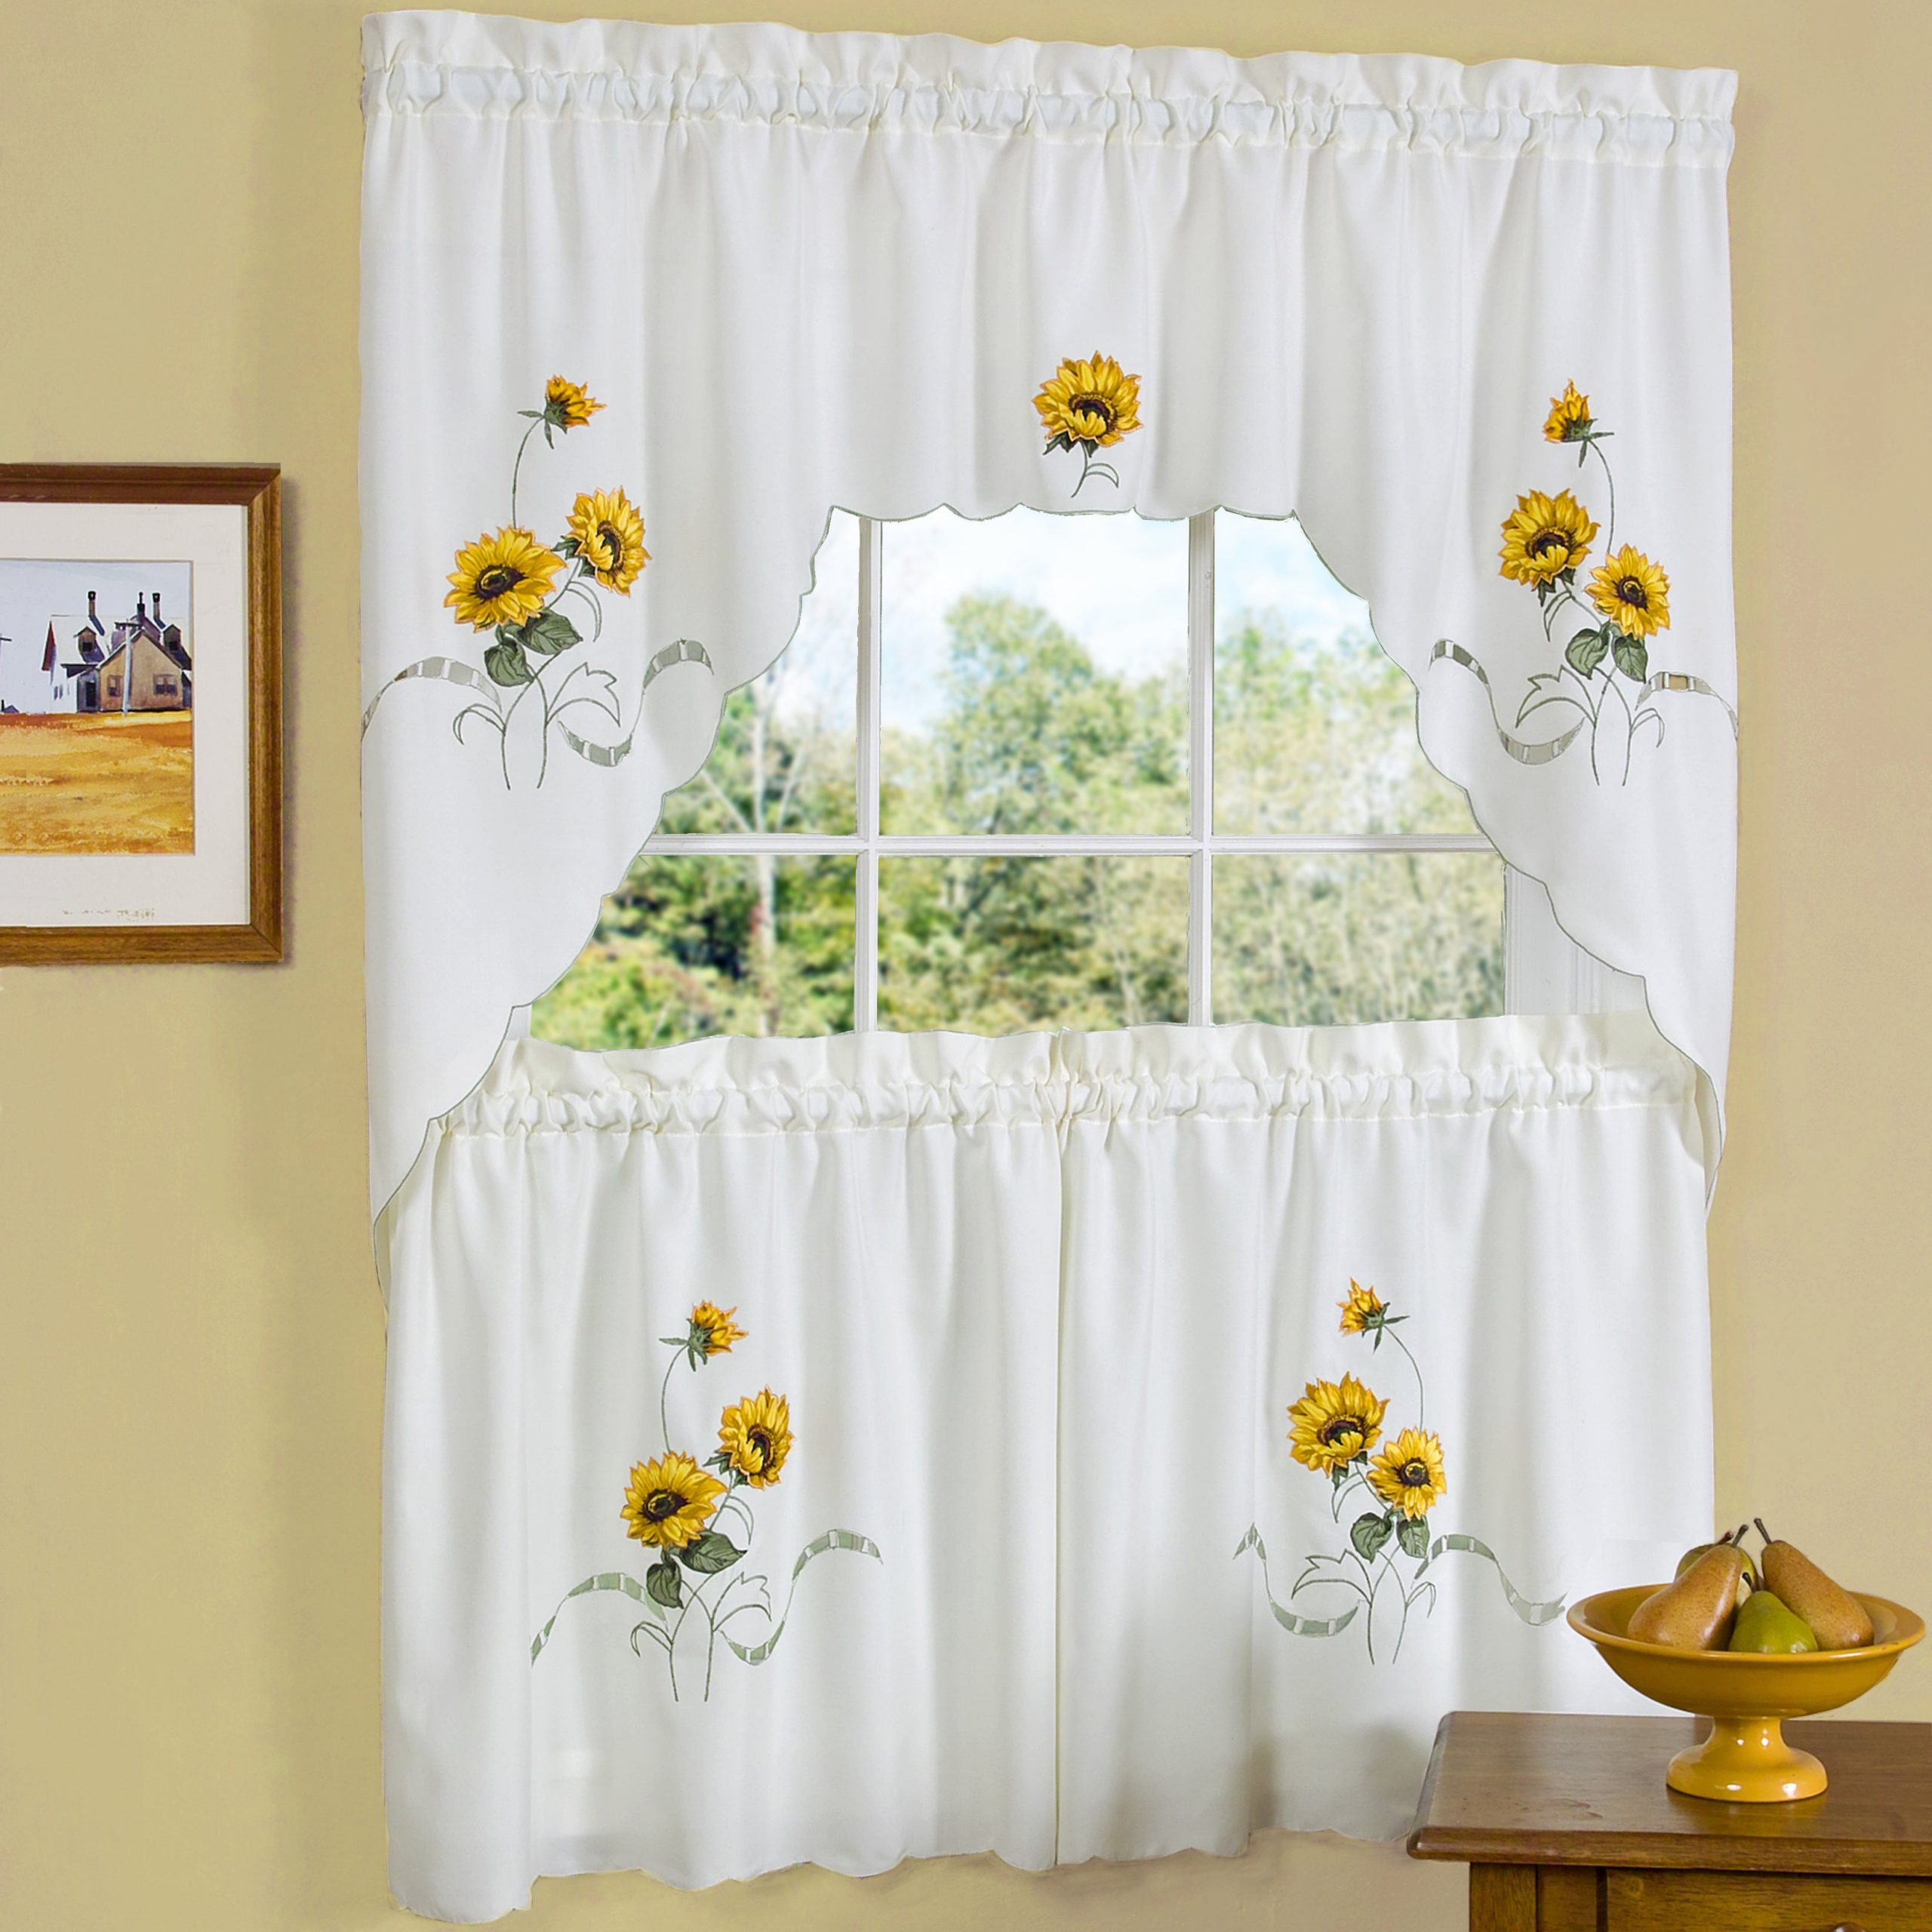 Details About Sunflower Tier & Swag Set Complete Kitchen Curtain Sun Blossom Pertaining To Chardonnay Tier And Swag Kitchen Curtain Sets (View 15 of 20)